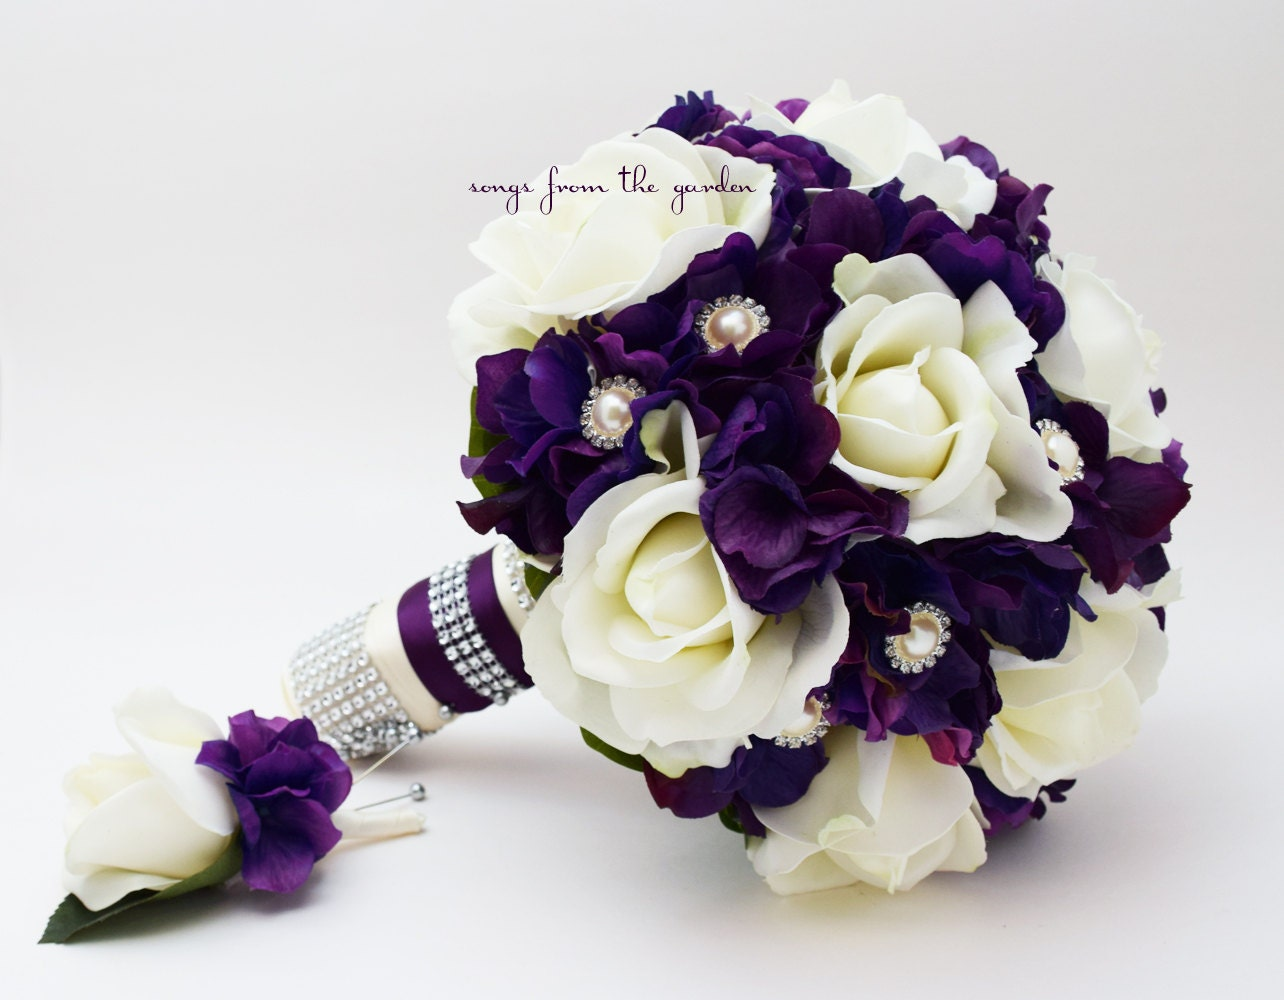 purple white wedding flower bouquet real touch white roses purple hydrangea  rhinestone pearl accents - add a groom or groomsmen boutonniere